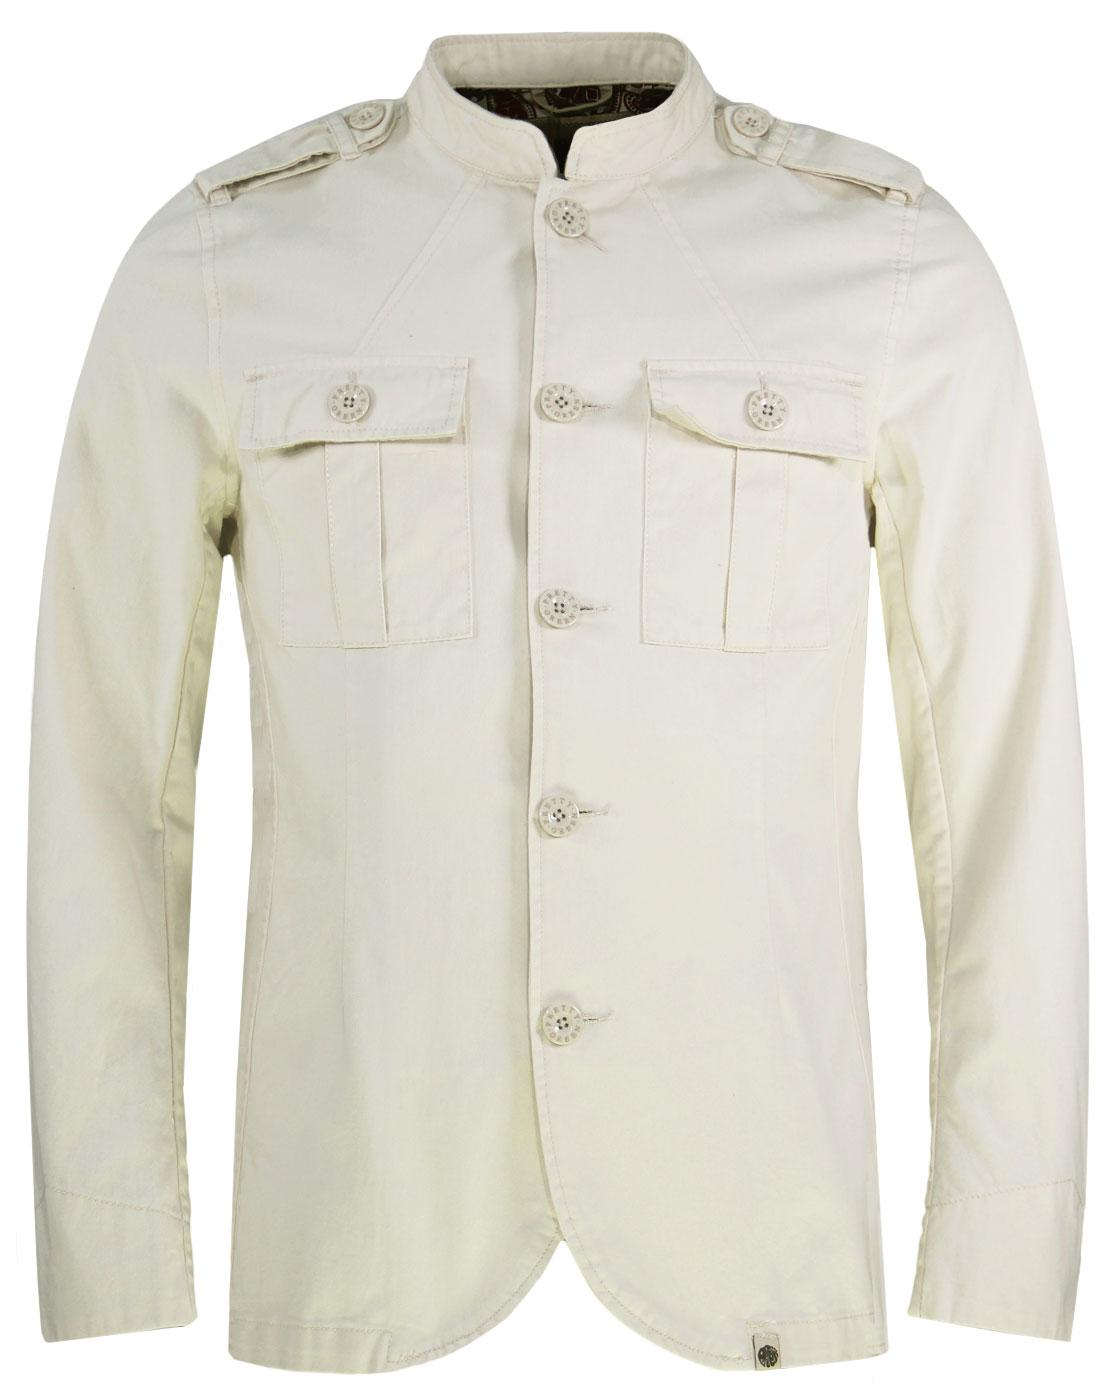 Langford PRETTY GREEN Mod Military Twill Jacket S